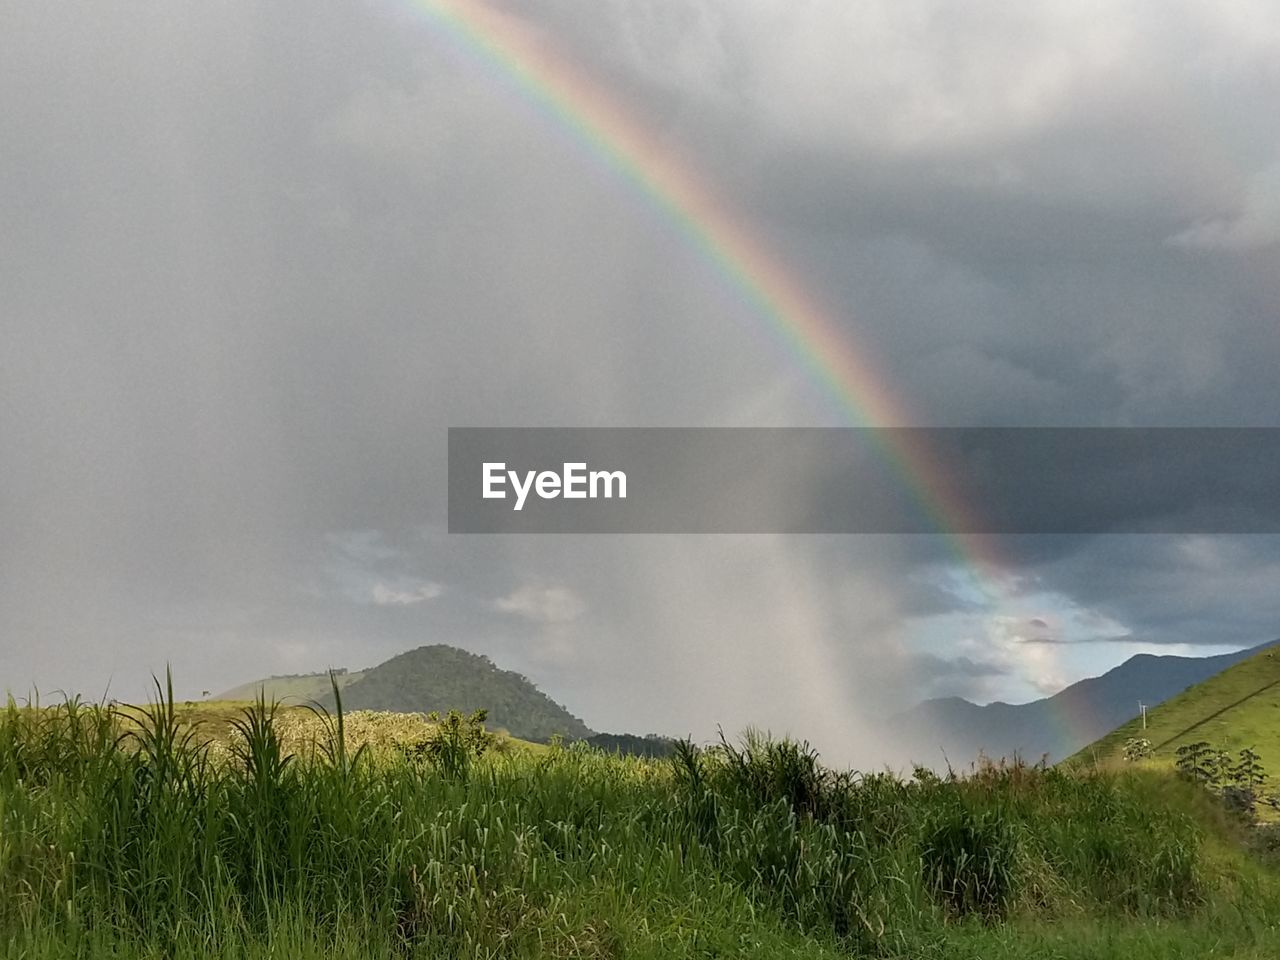 SCENIC VIEW OF RAINBOW OVER LAND AND MOUNTAINS AGAINST SKY